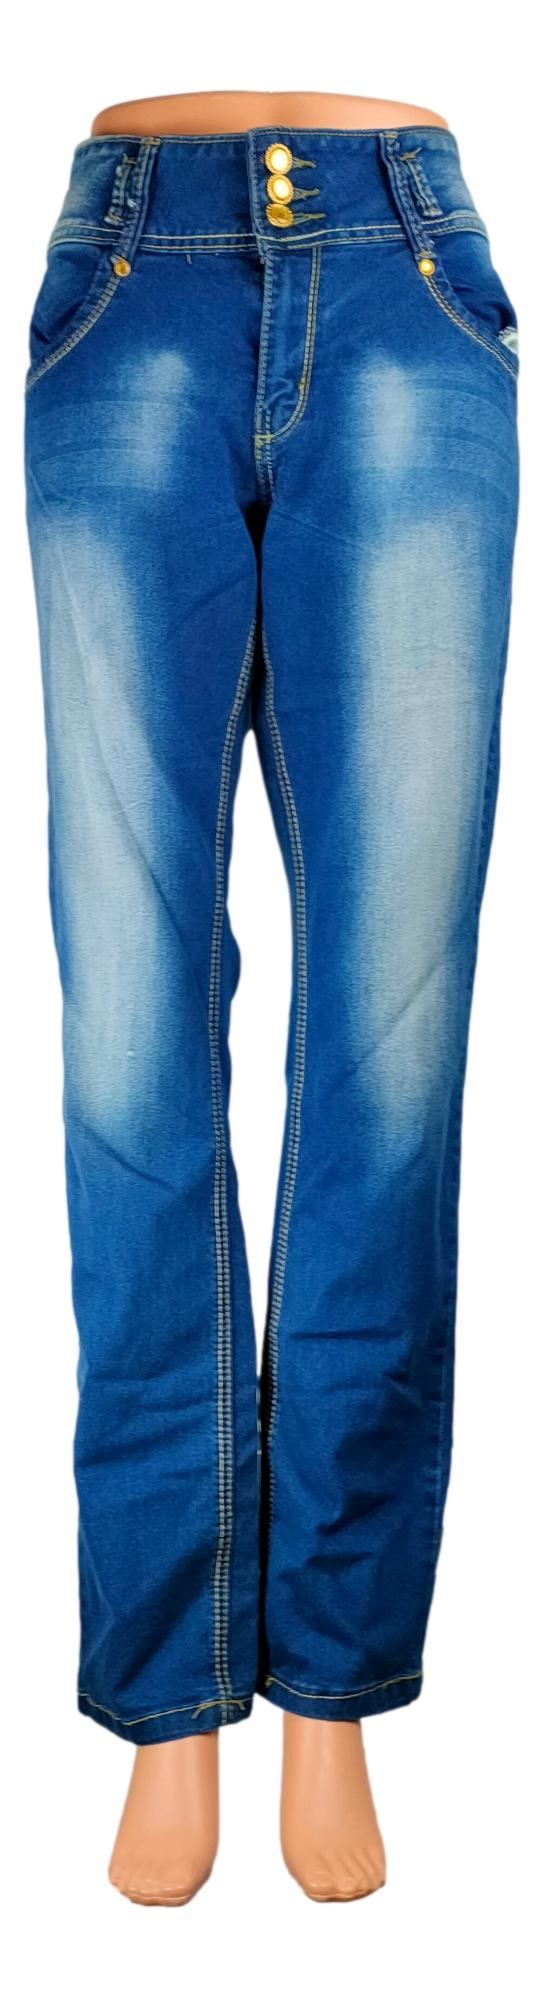 Jean Sexy Couture - Taille 42